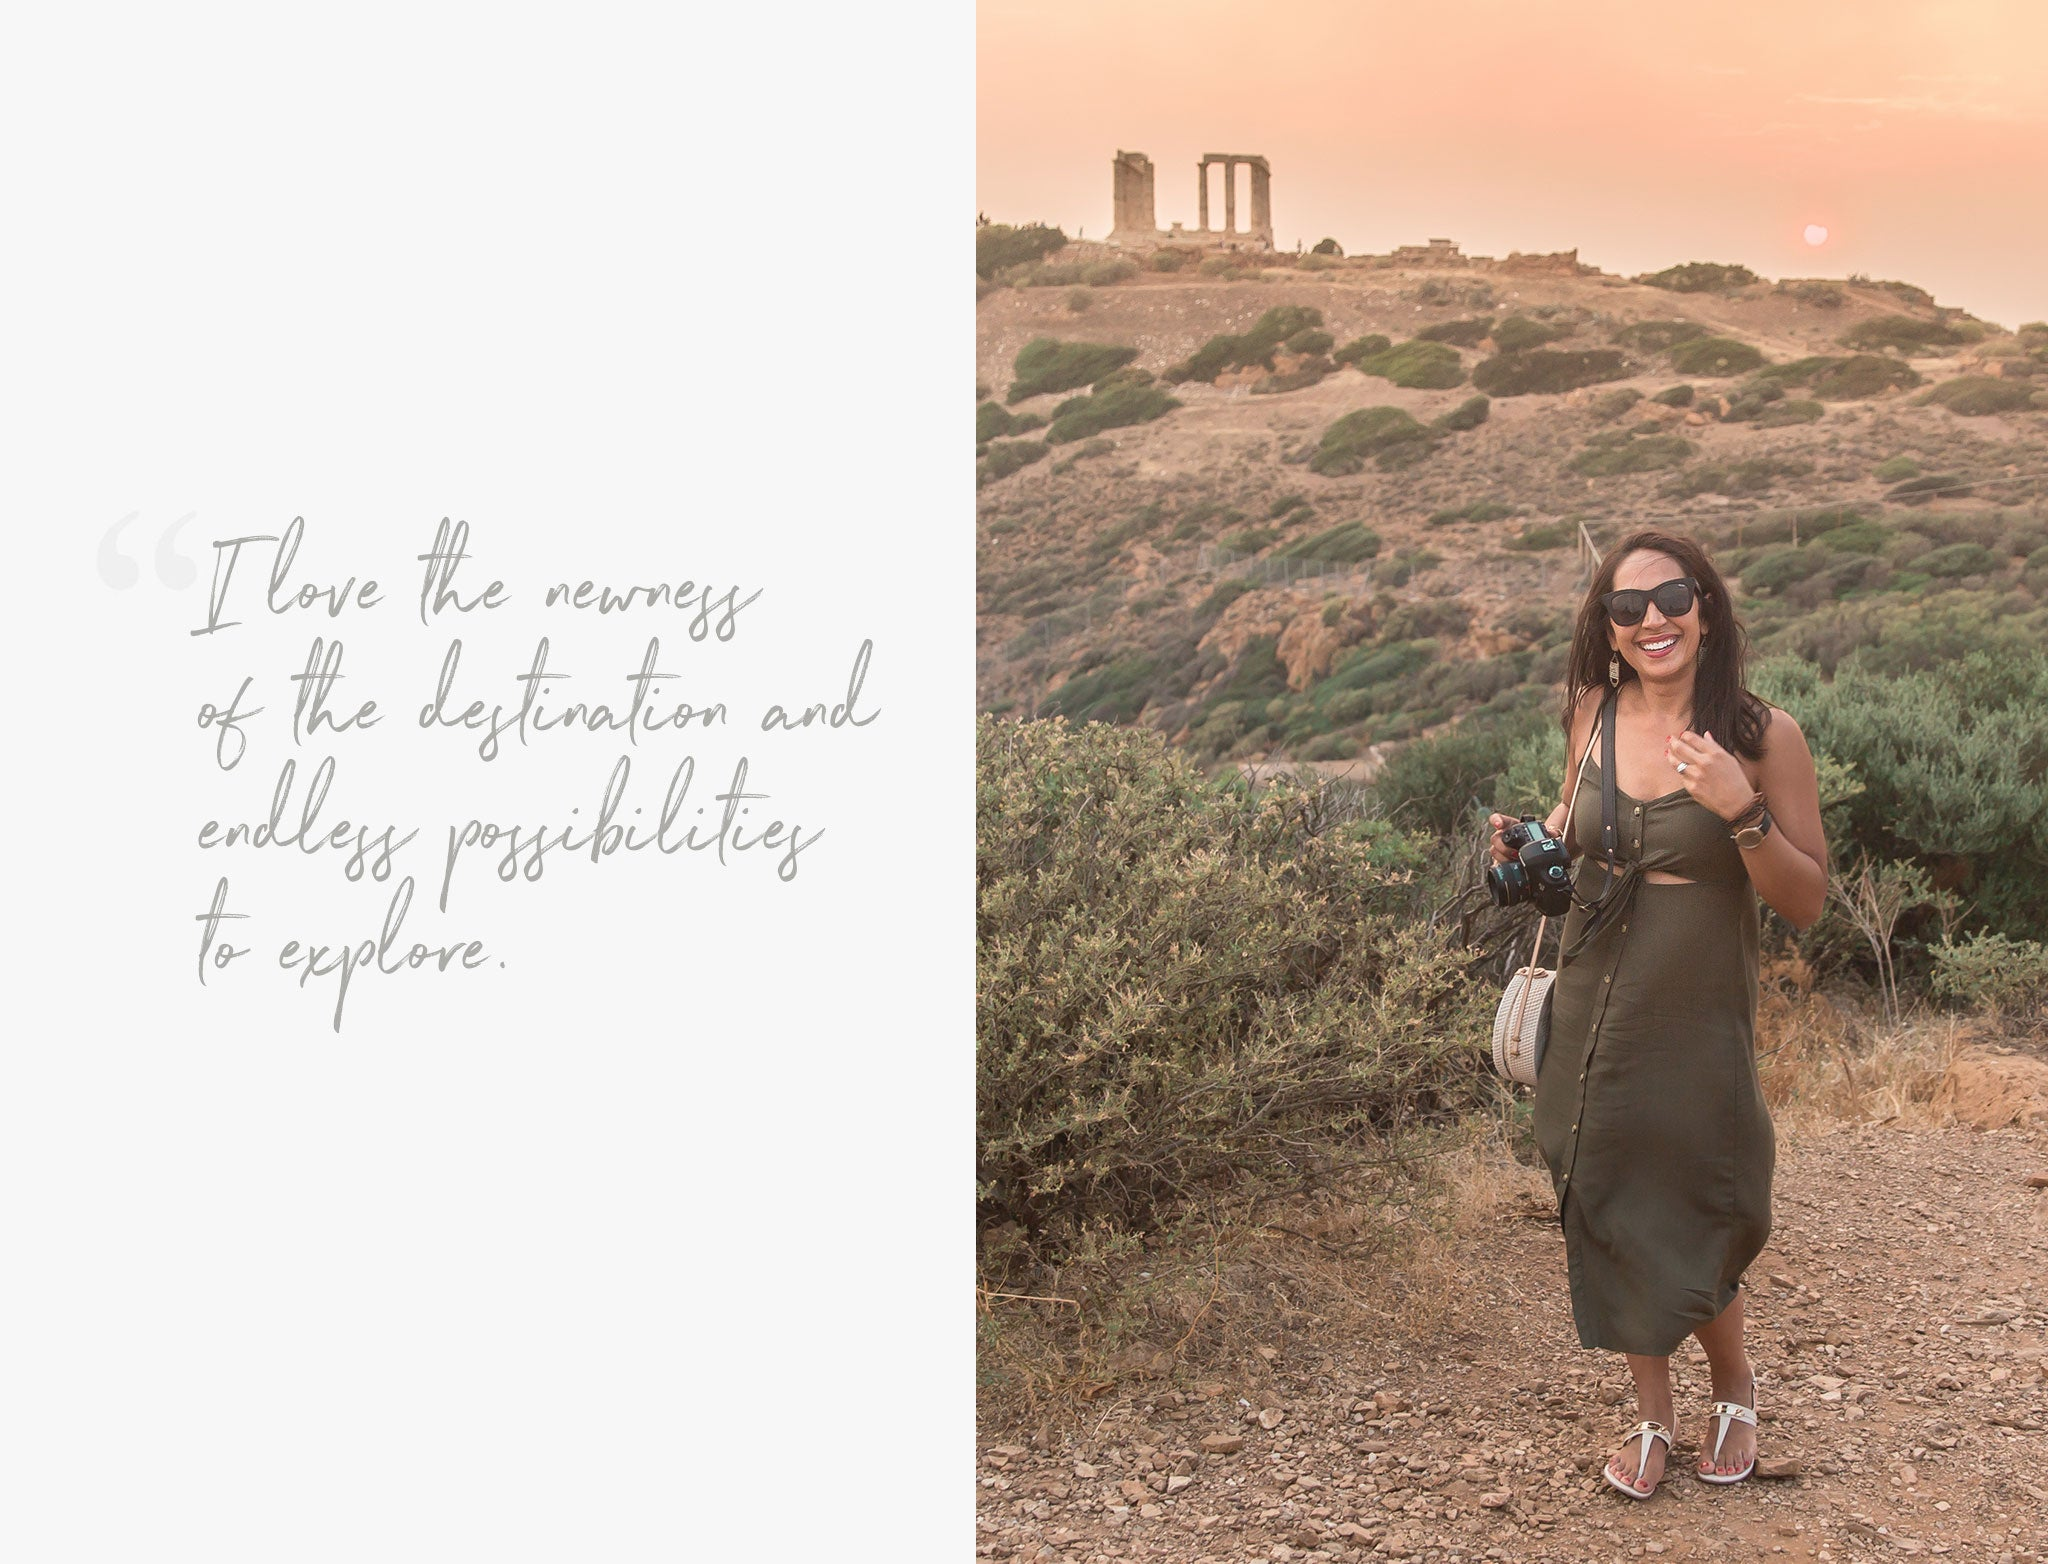 Professional destination wedding photographer, Lottie Royten of Lottie Lillian Photography, shares insight on how to prep for work in far off places.